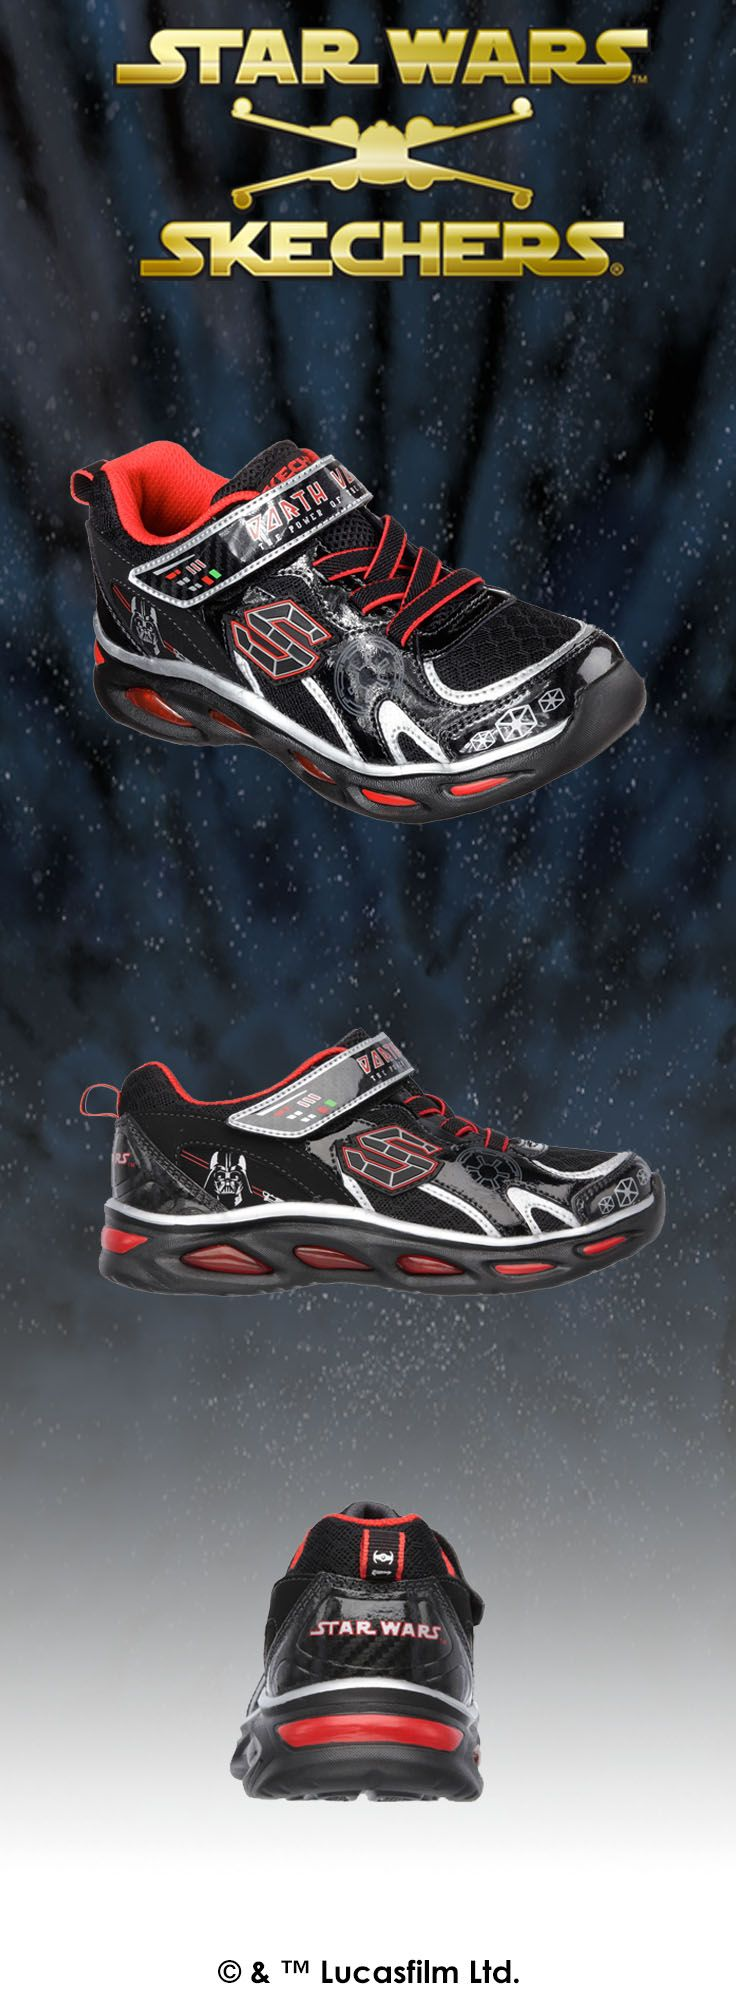 Experience the power of the Empire with Darth Vader™ and the Star Wars™ Skechers collection. | http://spr.ly/6004BuHwo